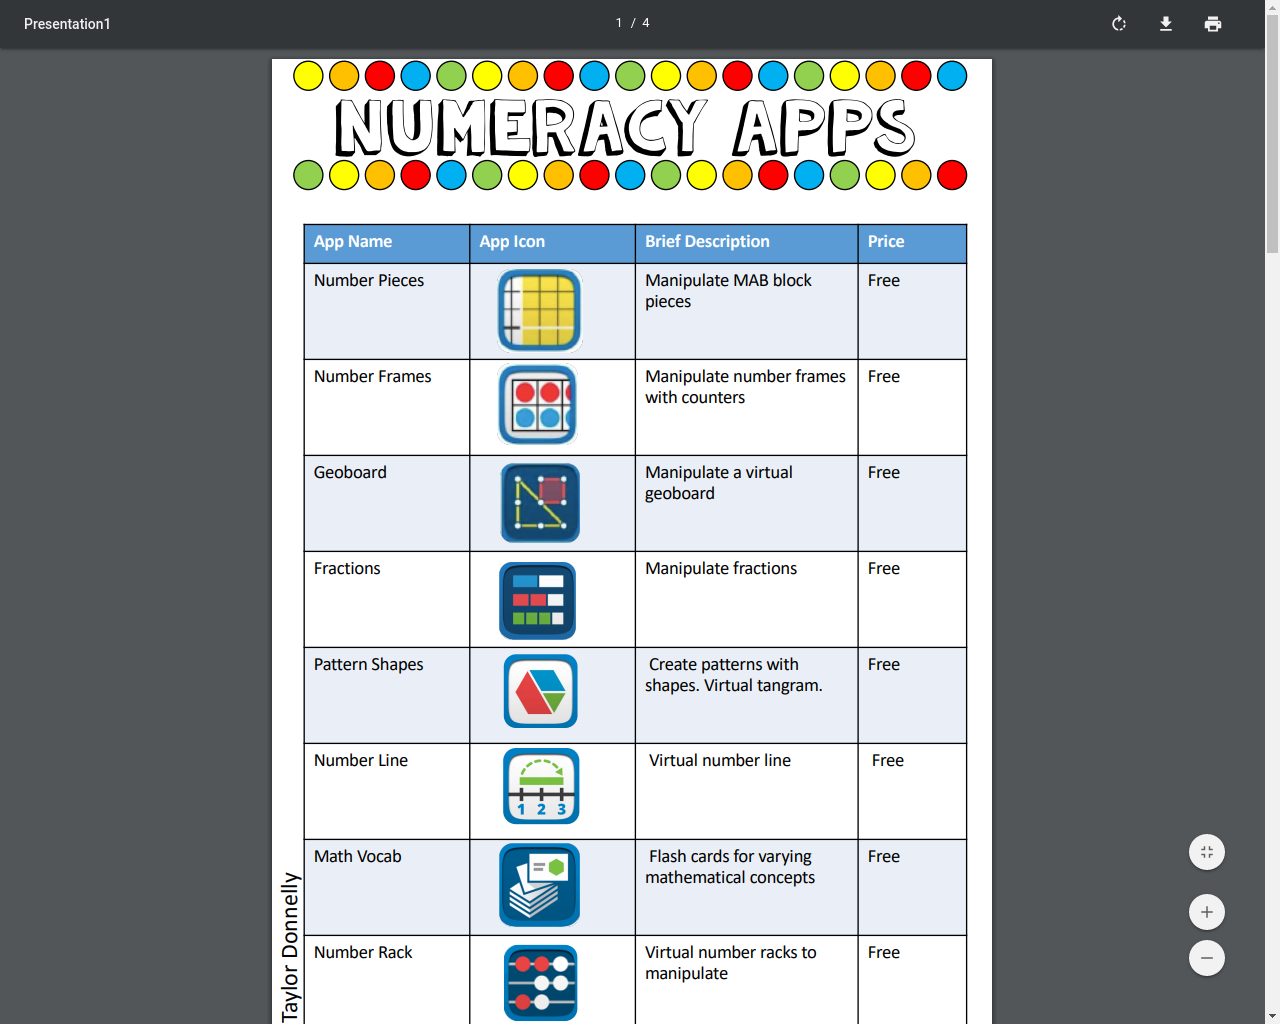 Numeracy Apps